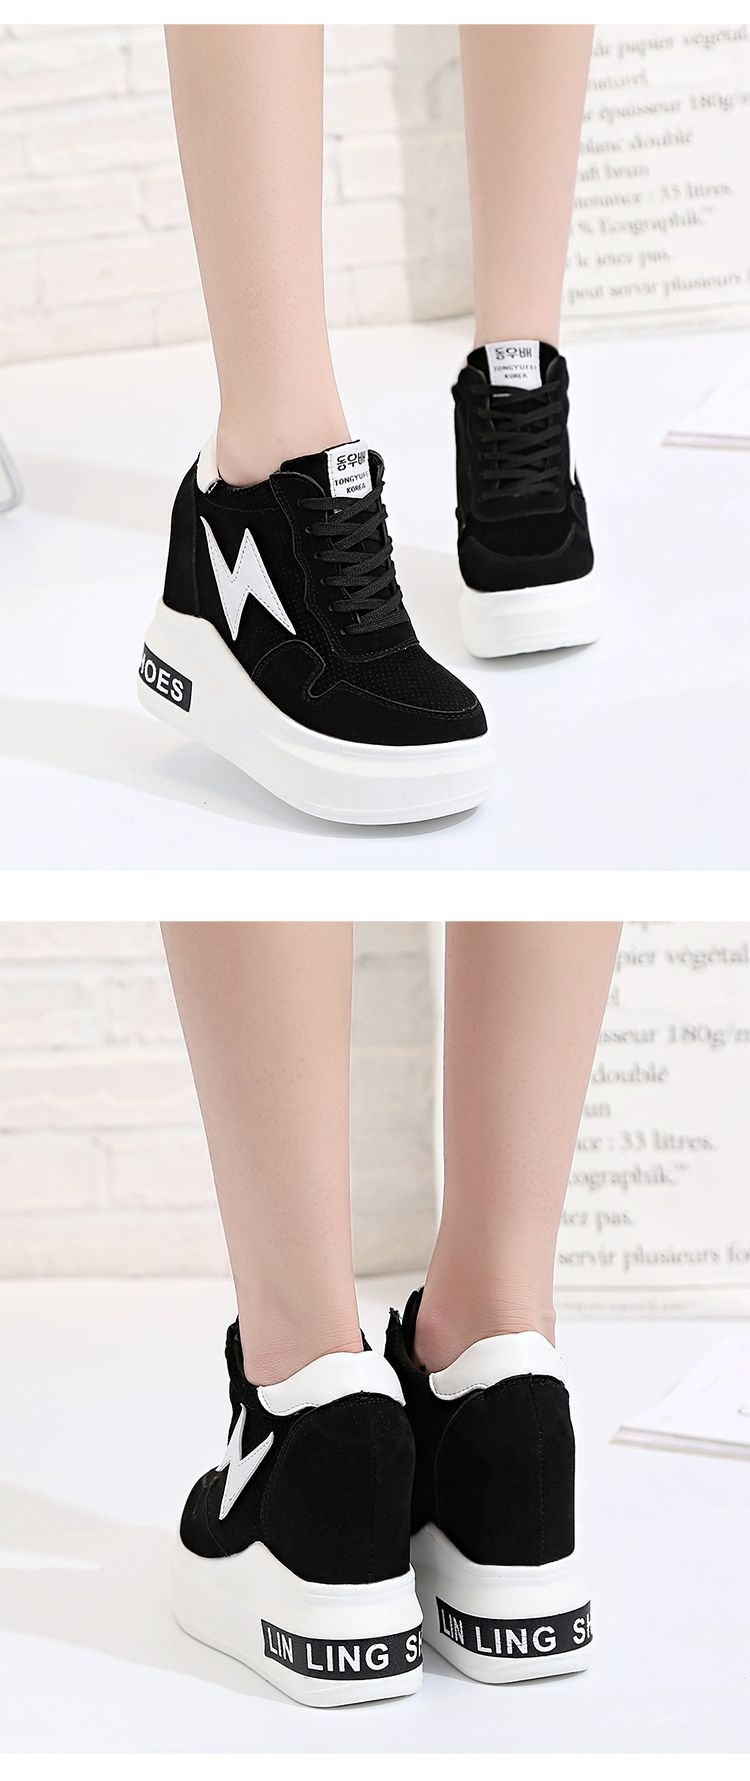 3f5bde801c 23  - 2017 new lady high heels fashion canvas casual wedge shoes woman  height increase platform shoes -in Women s Vulcanize Shoes from Shoes on ...